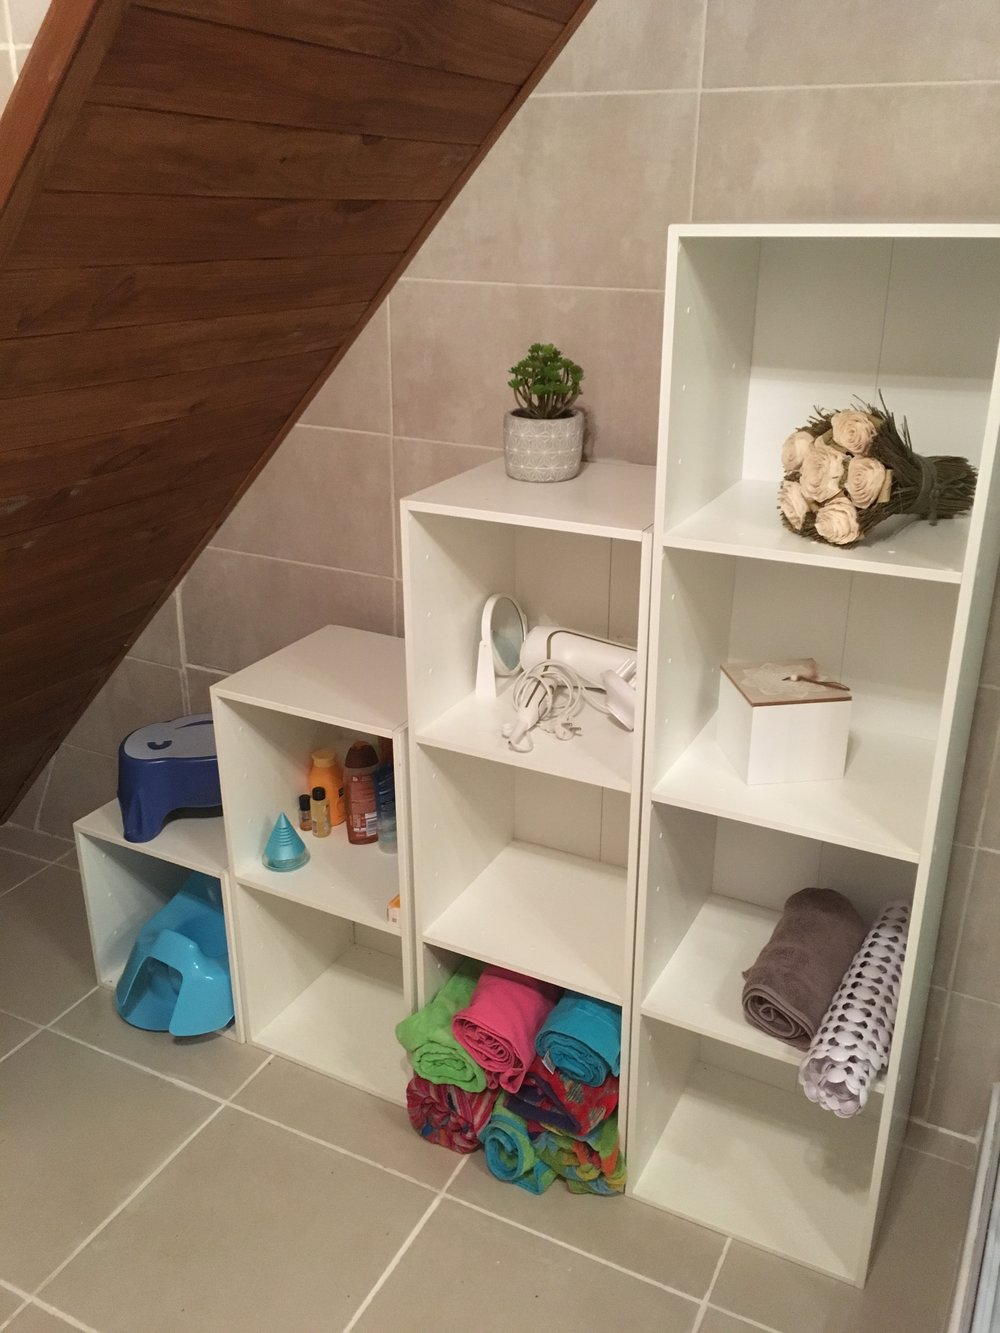 Shower room storage